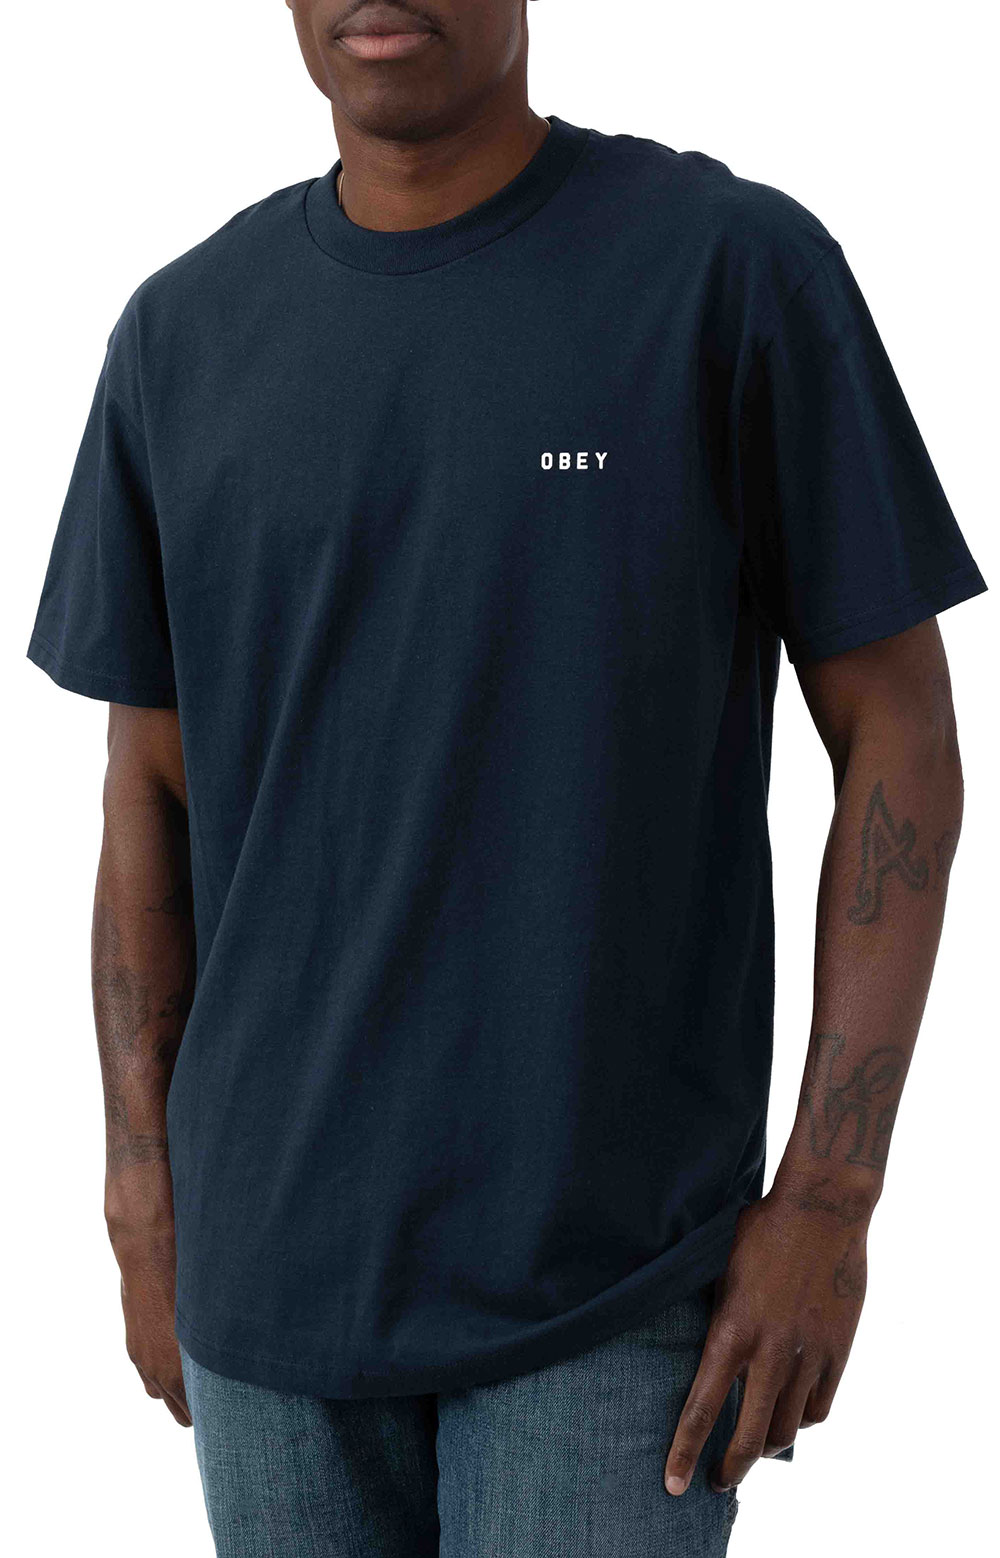 Obey Dissent & Chaos Tiger T-Shirt - Navy  2